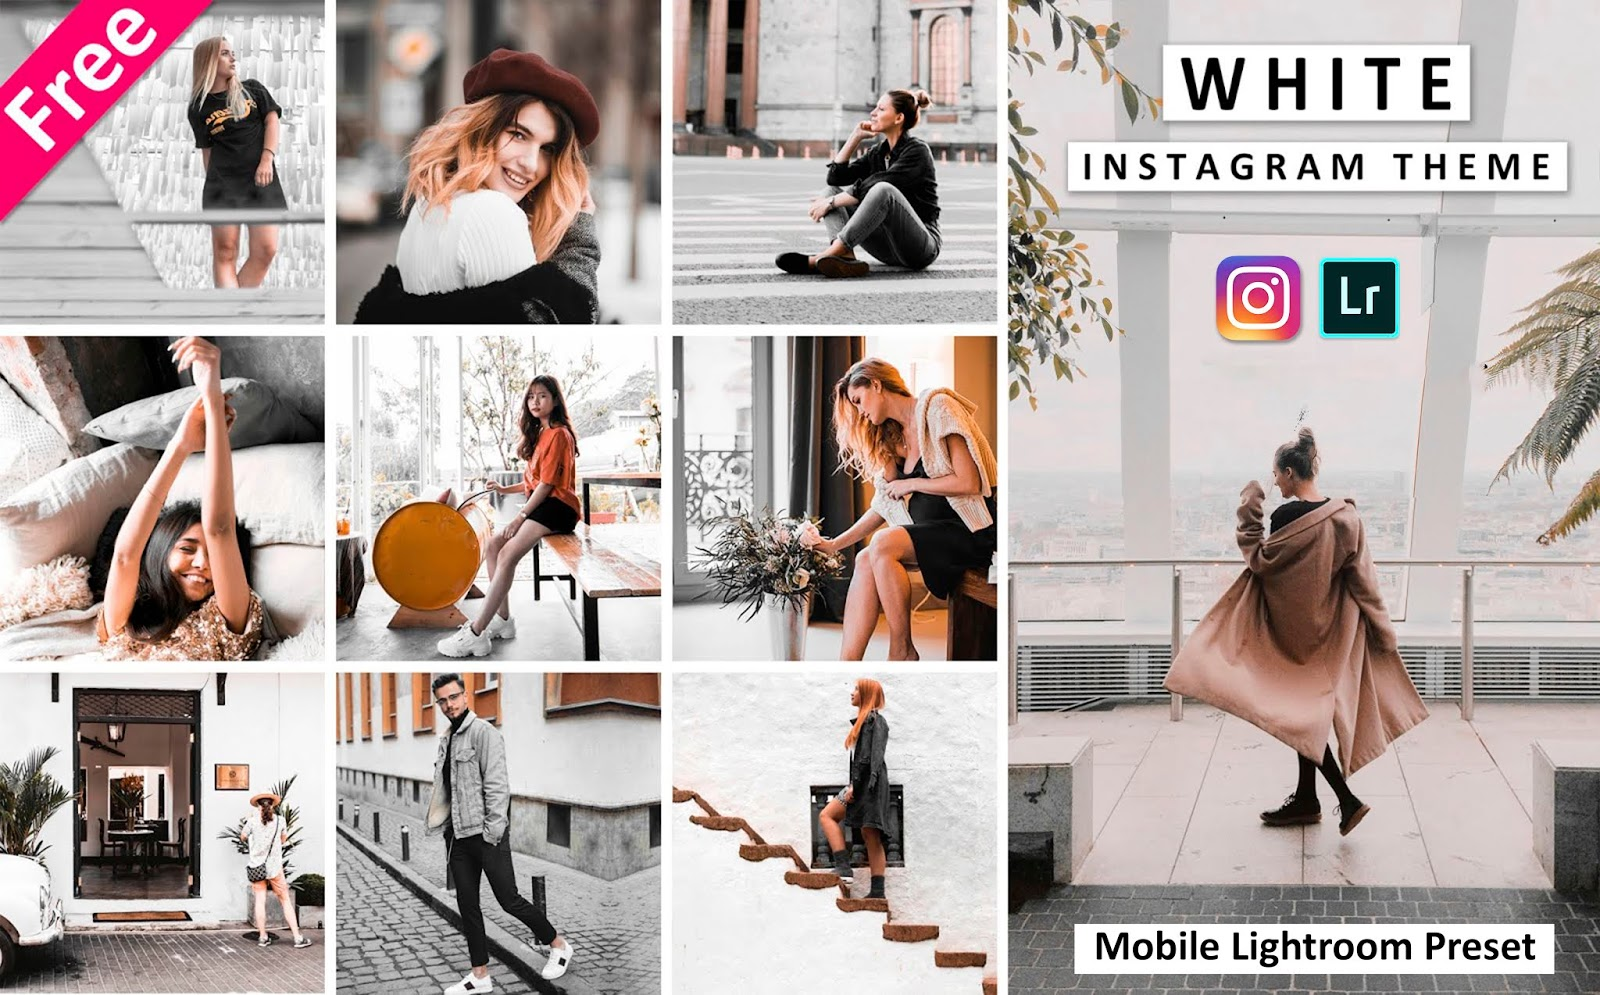 Download Instagram White Mobile Lightroom Presets for Free | How to Create White Theme of Instagram in Mobile Lightroom